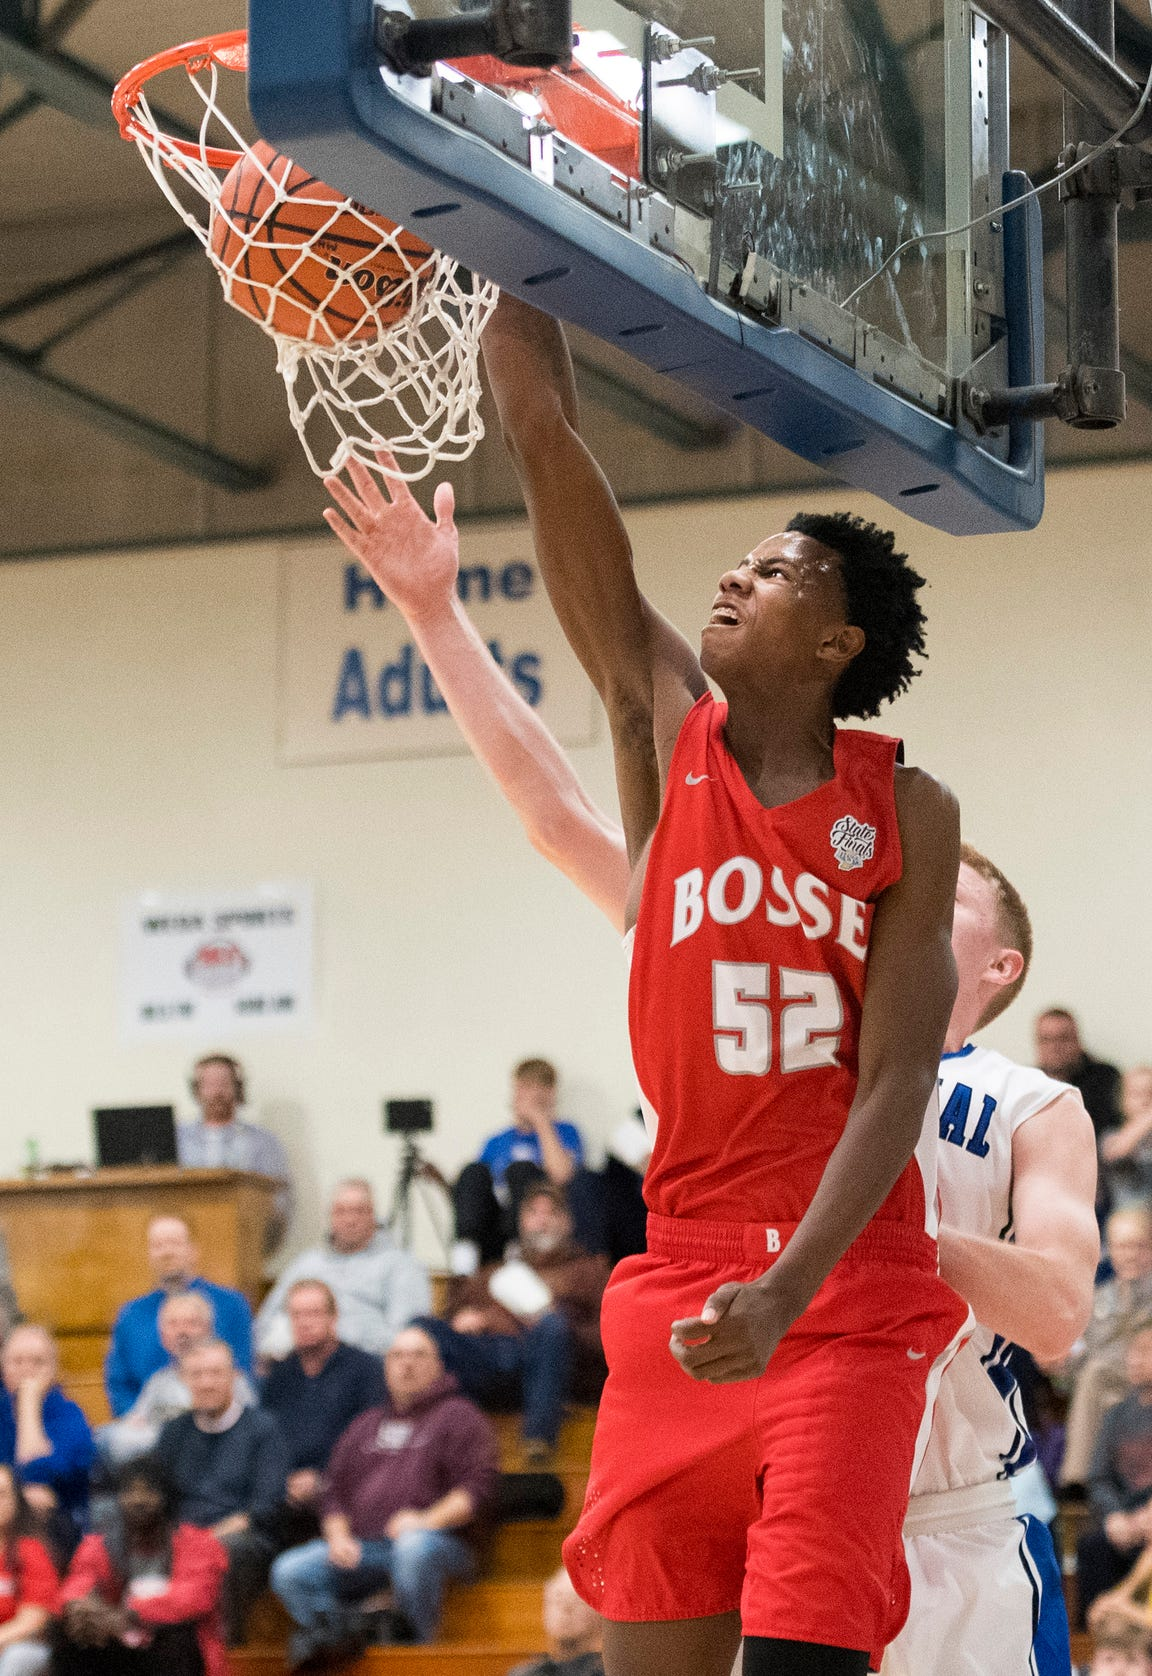 Bosse's Kiyron Powell (52) slams the ball in the basket during the varsity boys basketball game between the Memorial Tigers and Bosse Bulldogs at Memorial High School Tuesday, Dec. 11, 2018. Memorial won 57-45.